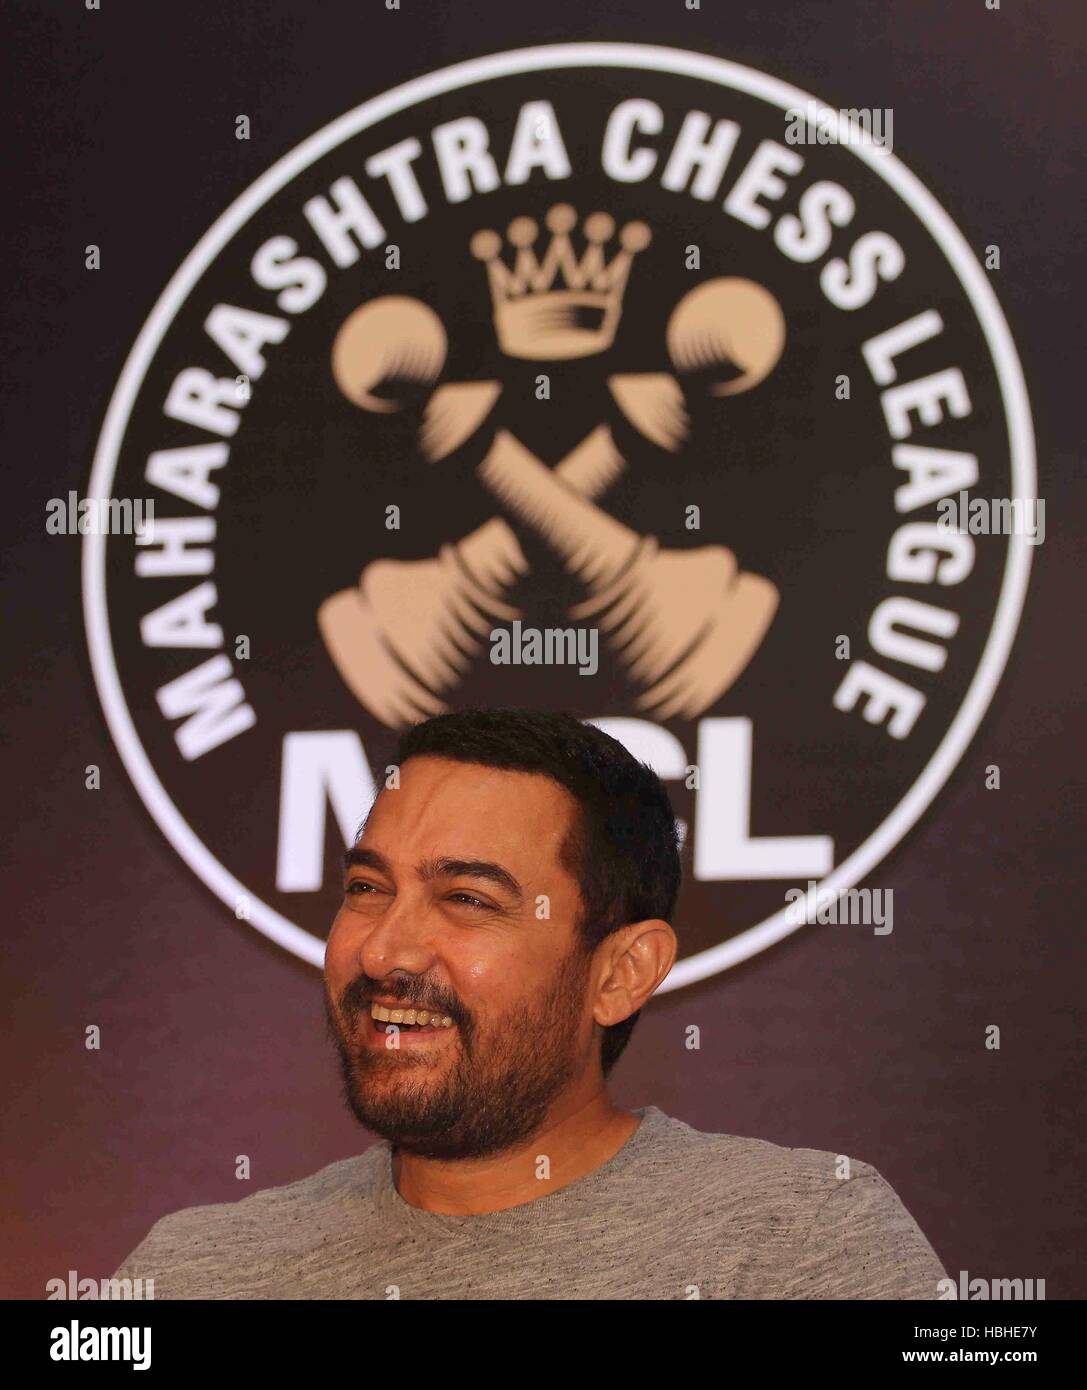 Bollywood actor Aamir Khan during the announcement of 3rd Edition of Maharashtra Chess League (MCL) in Mumbai - Stock Image